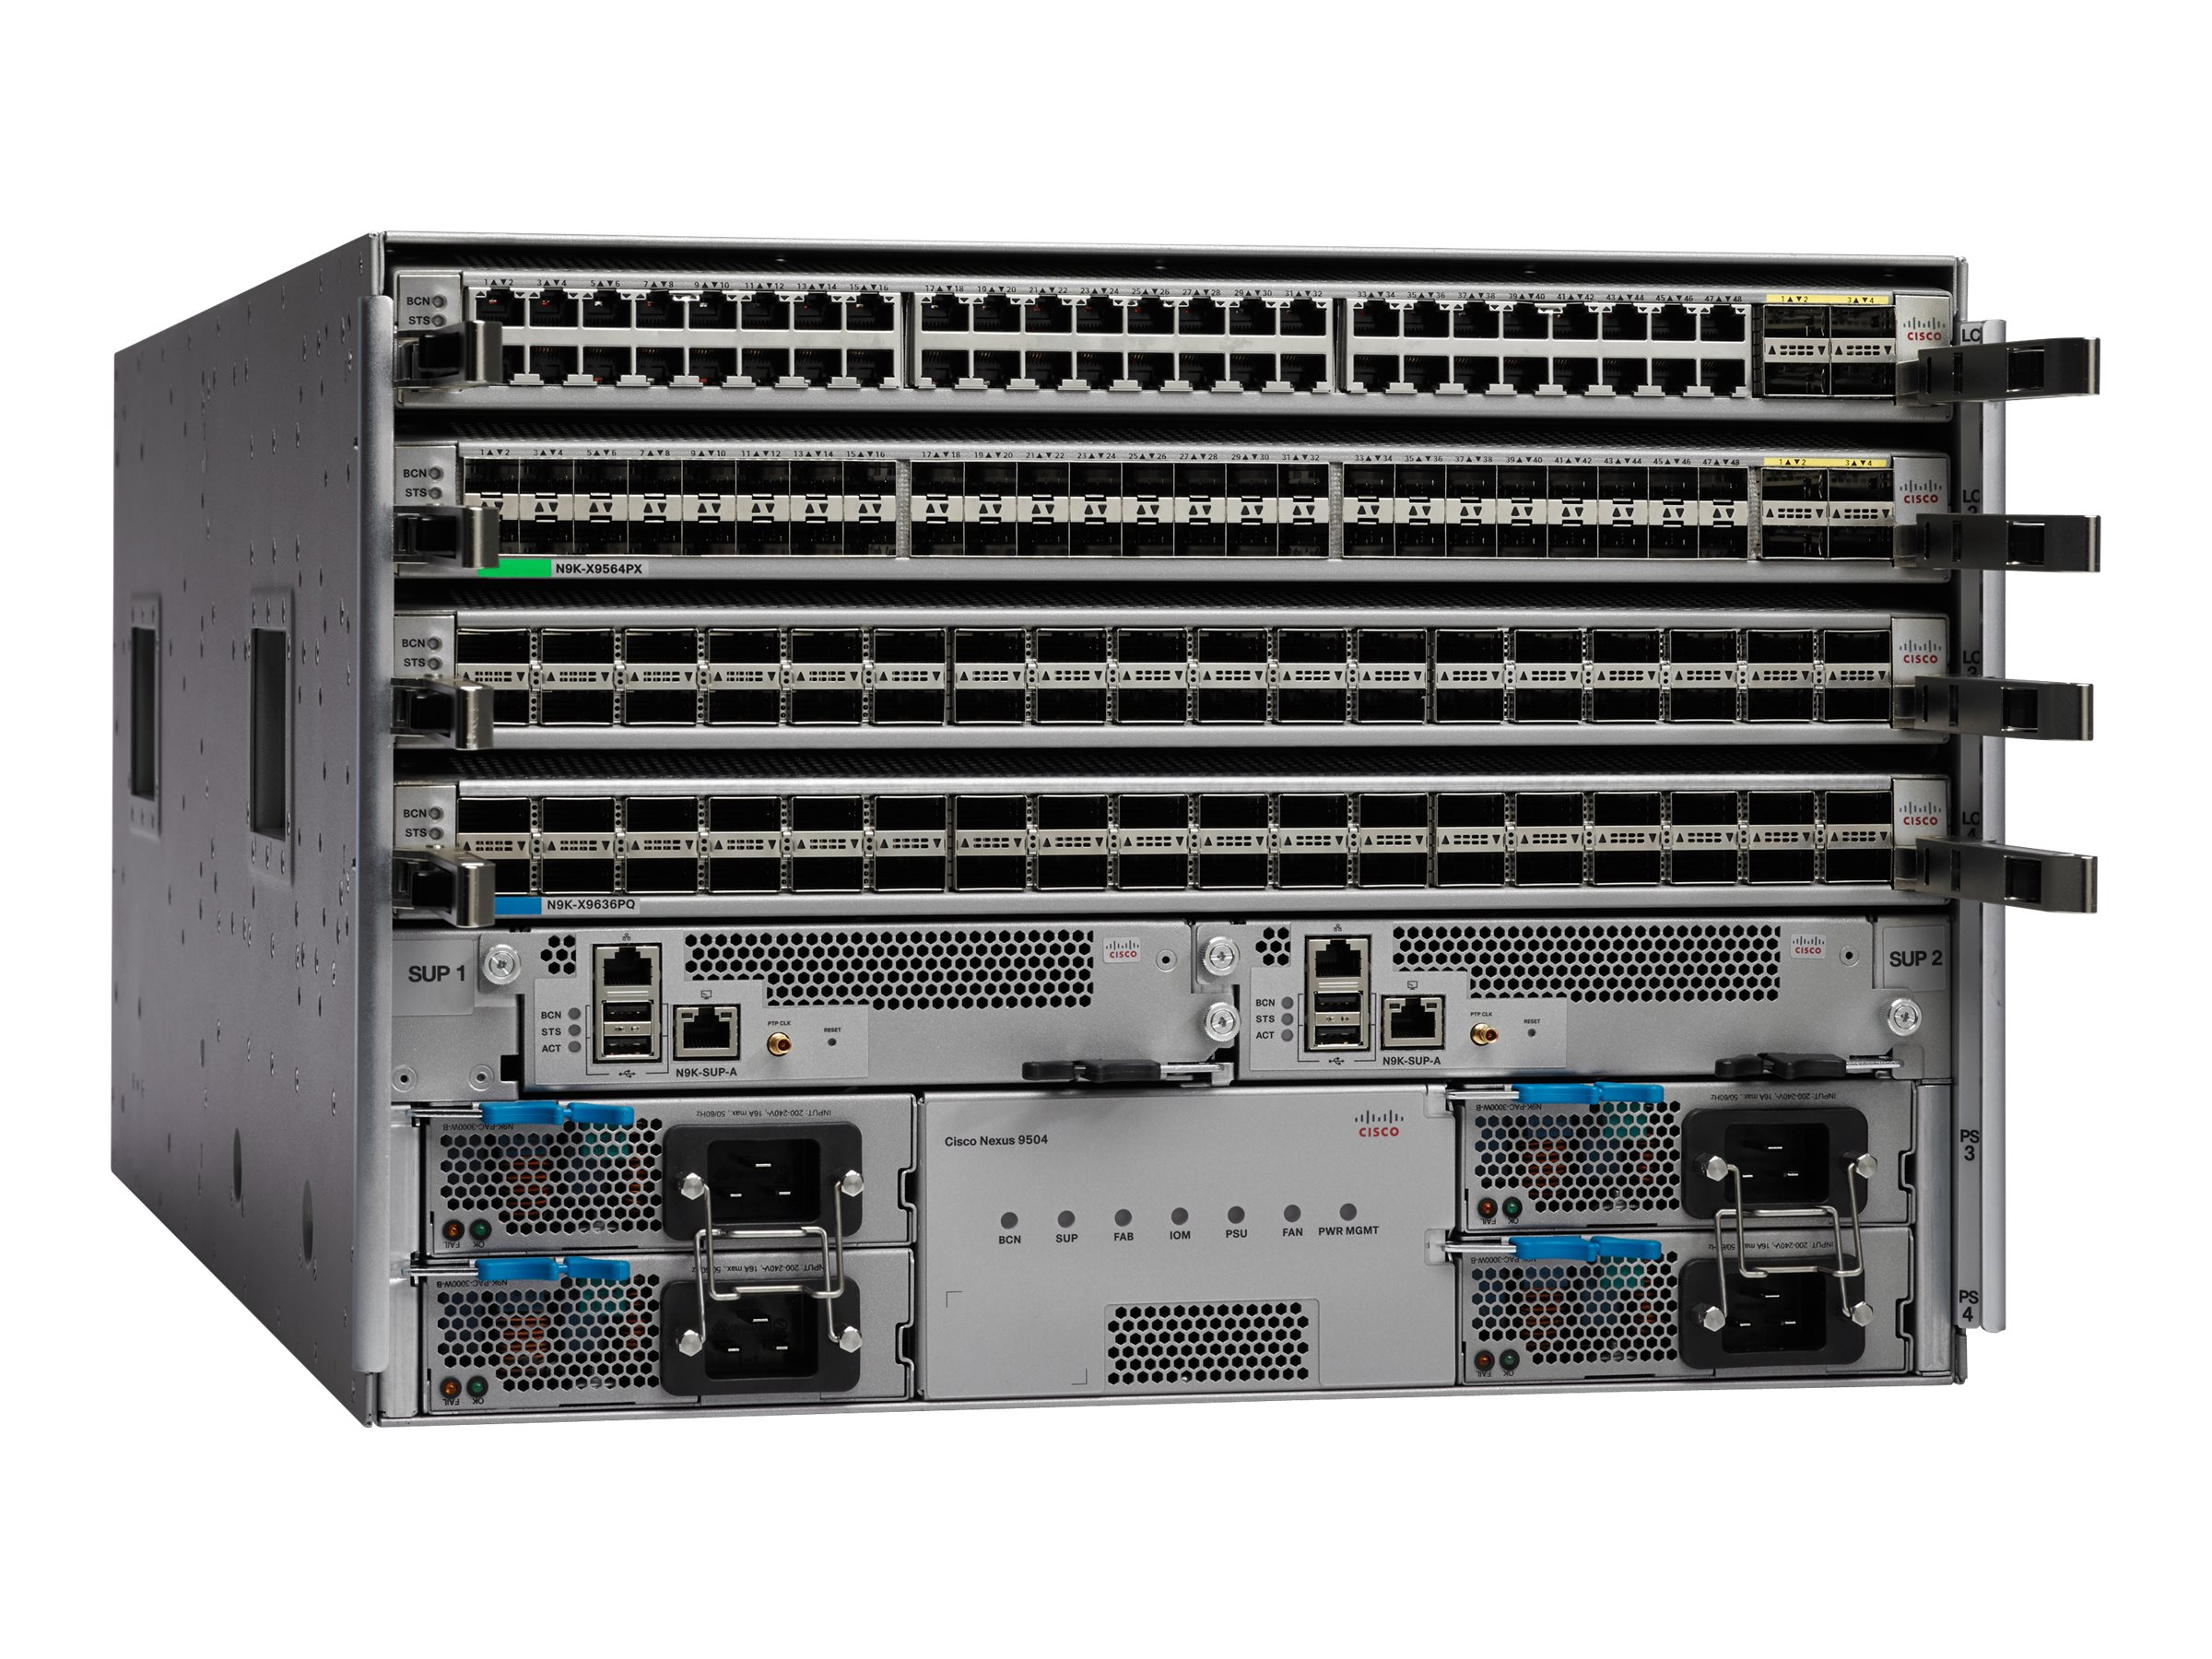 Cisco One Nexus 9504 Chassis w 1xSup 3xPS 3xFan 3xFab Module, C1-N9K-C9504-B2, 30734603, Network Switches